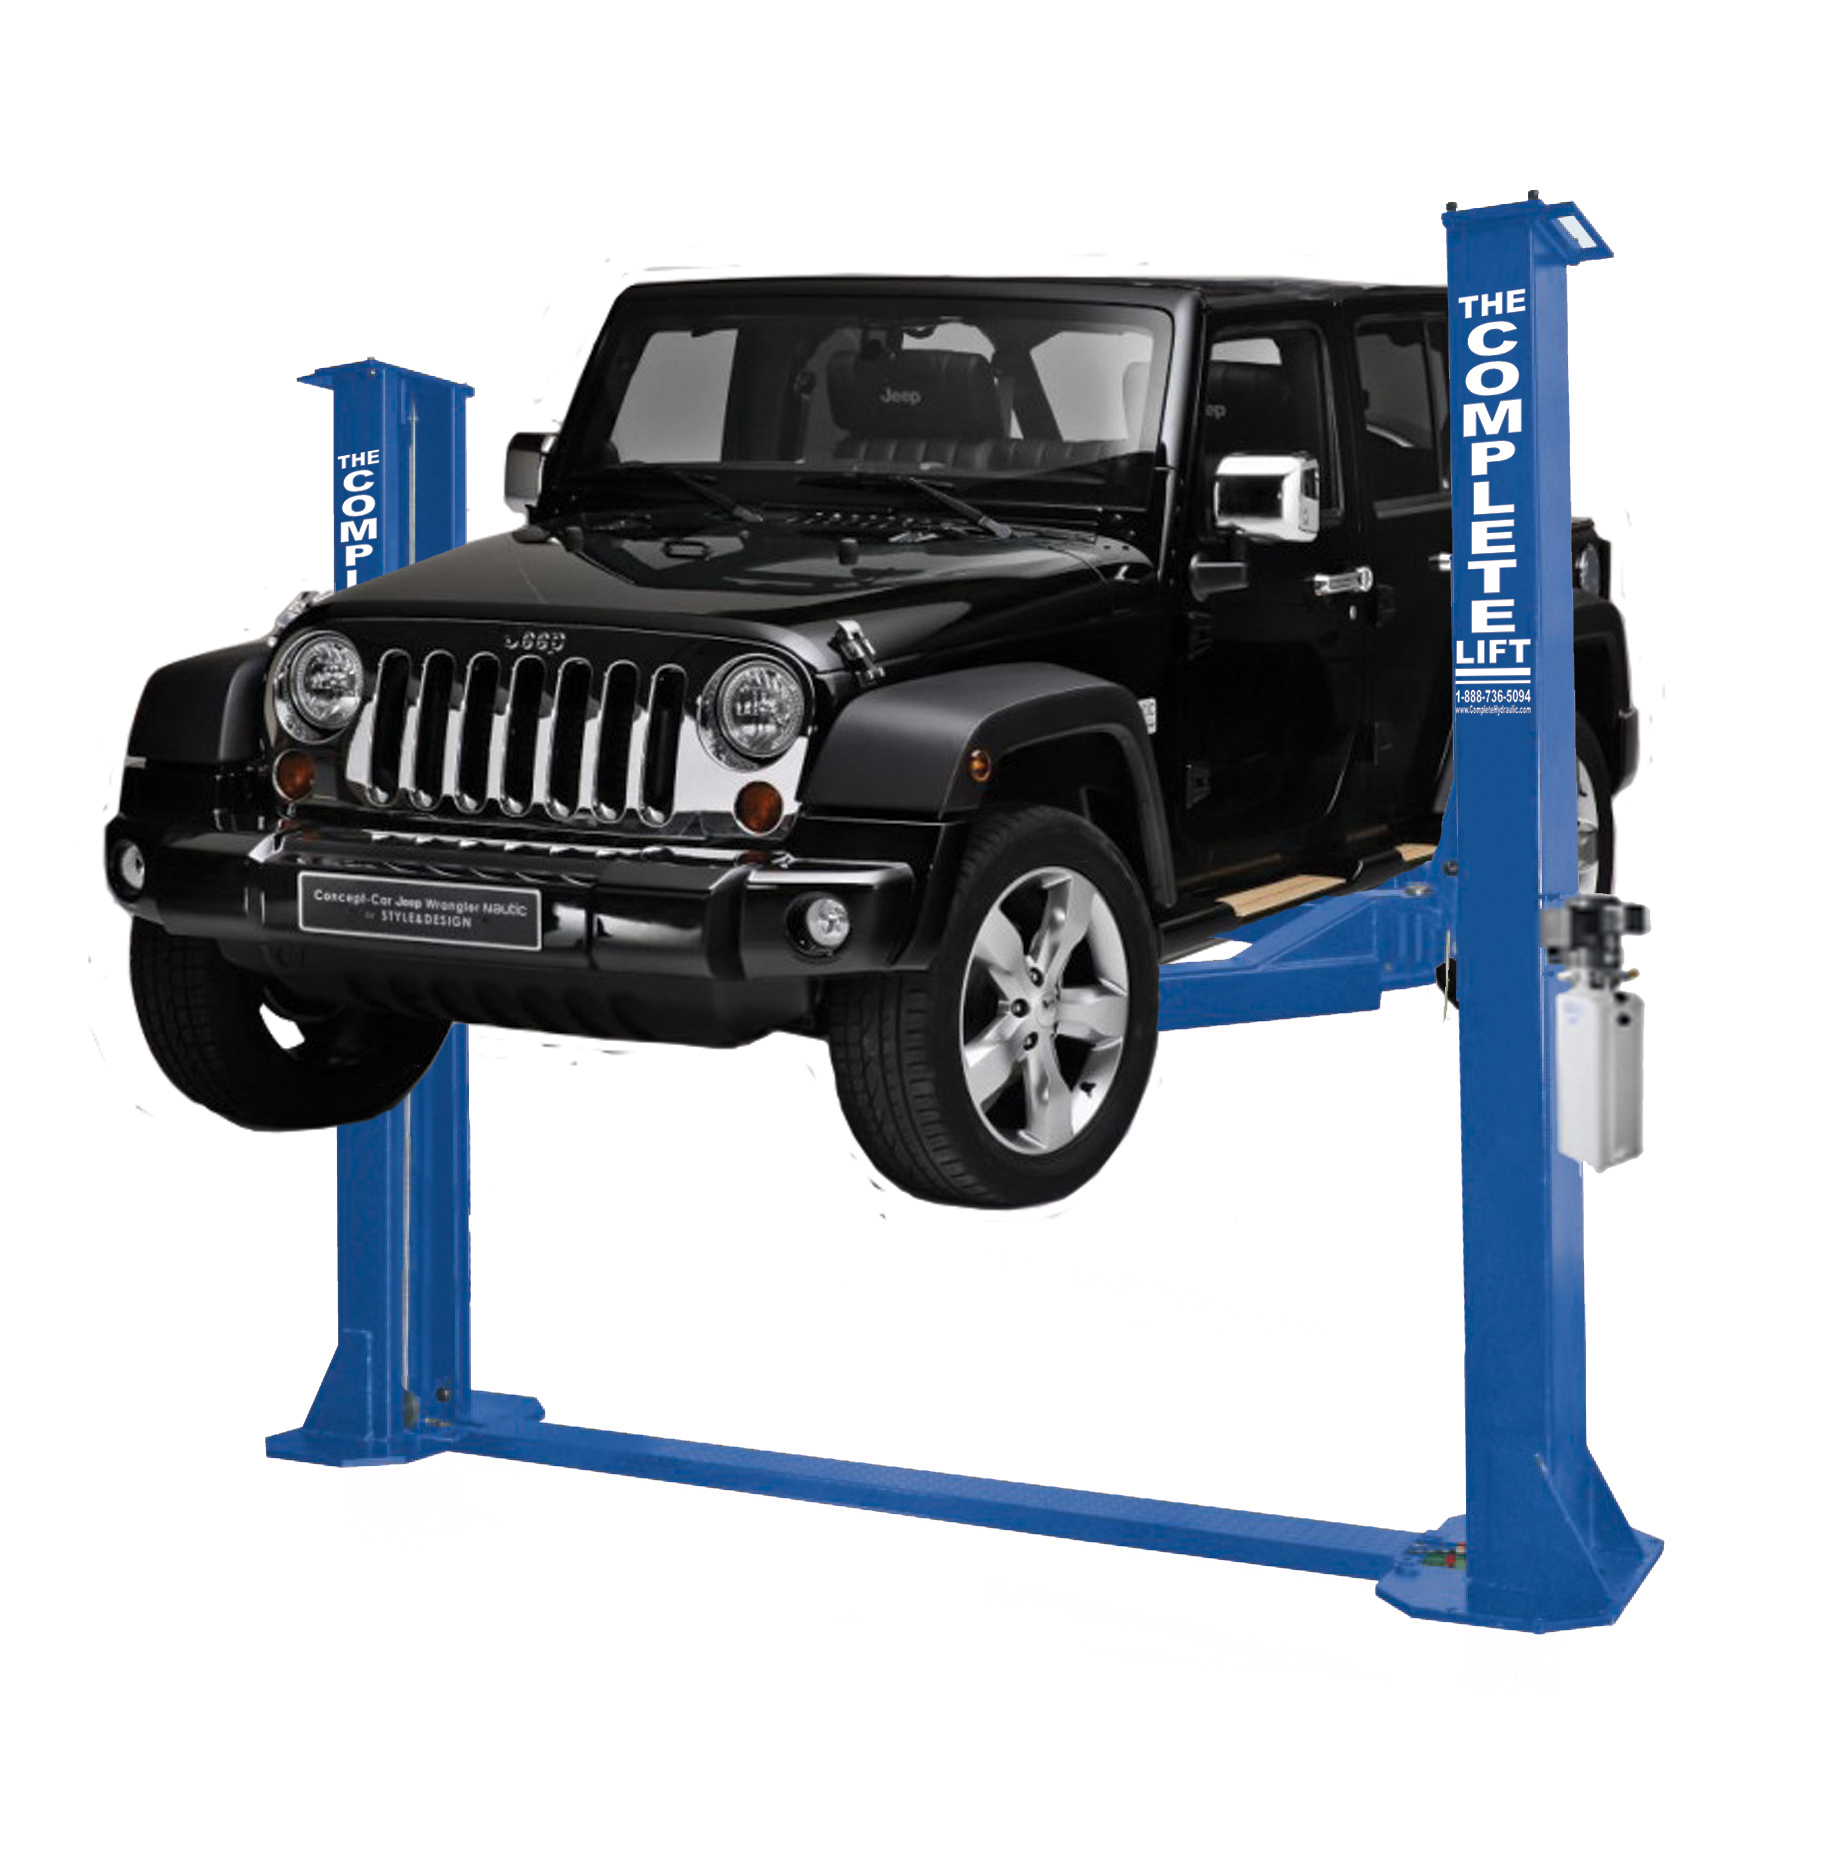 SL 12,000 OHP 2 Post Automotive Lift